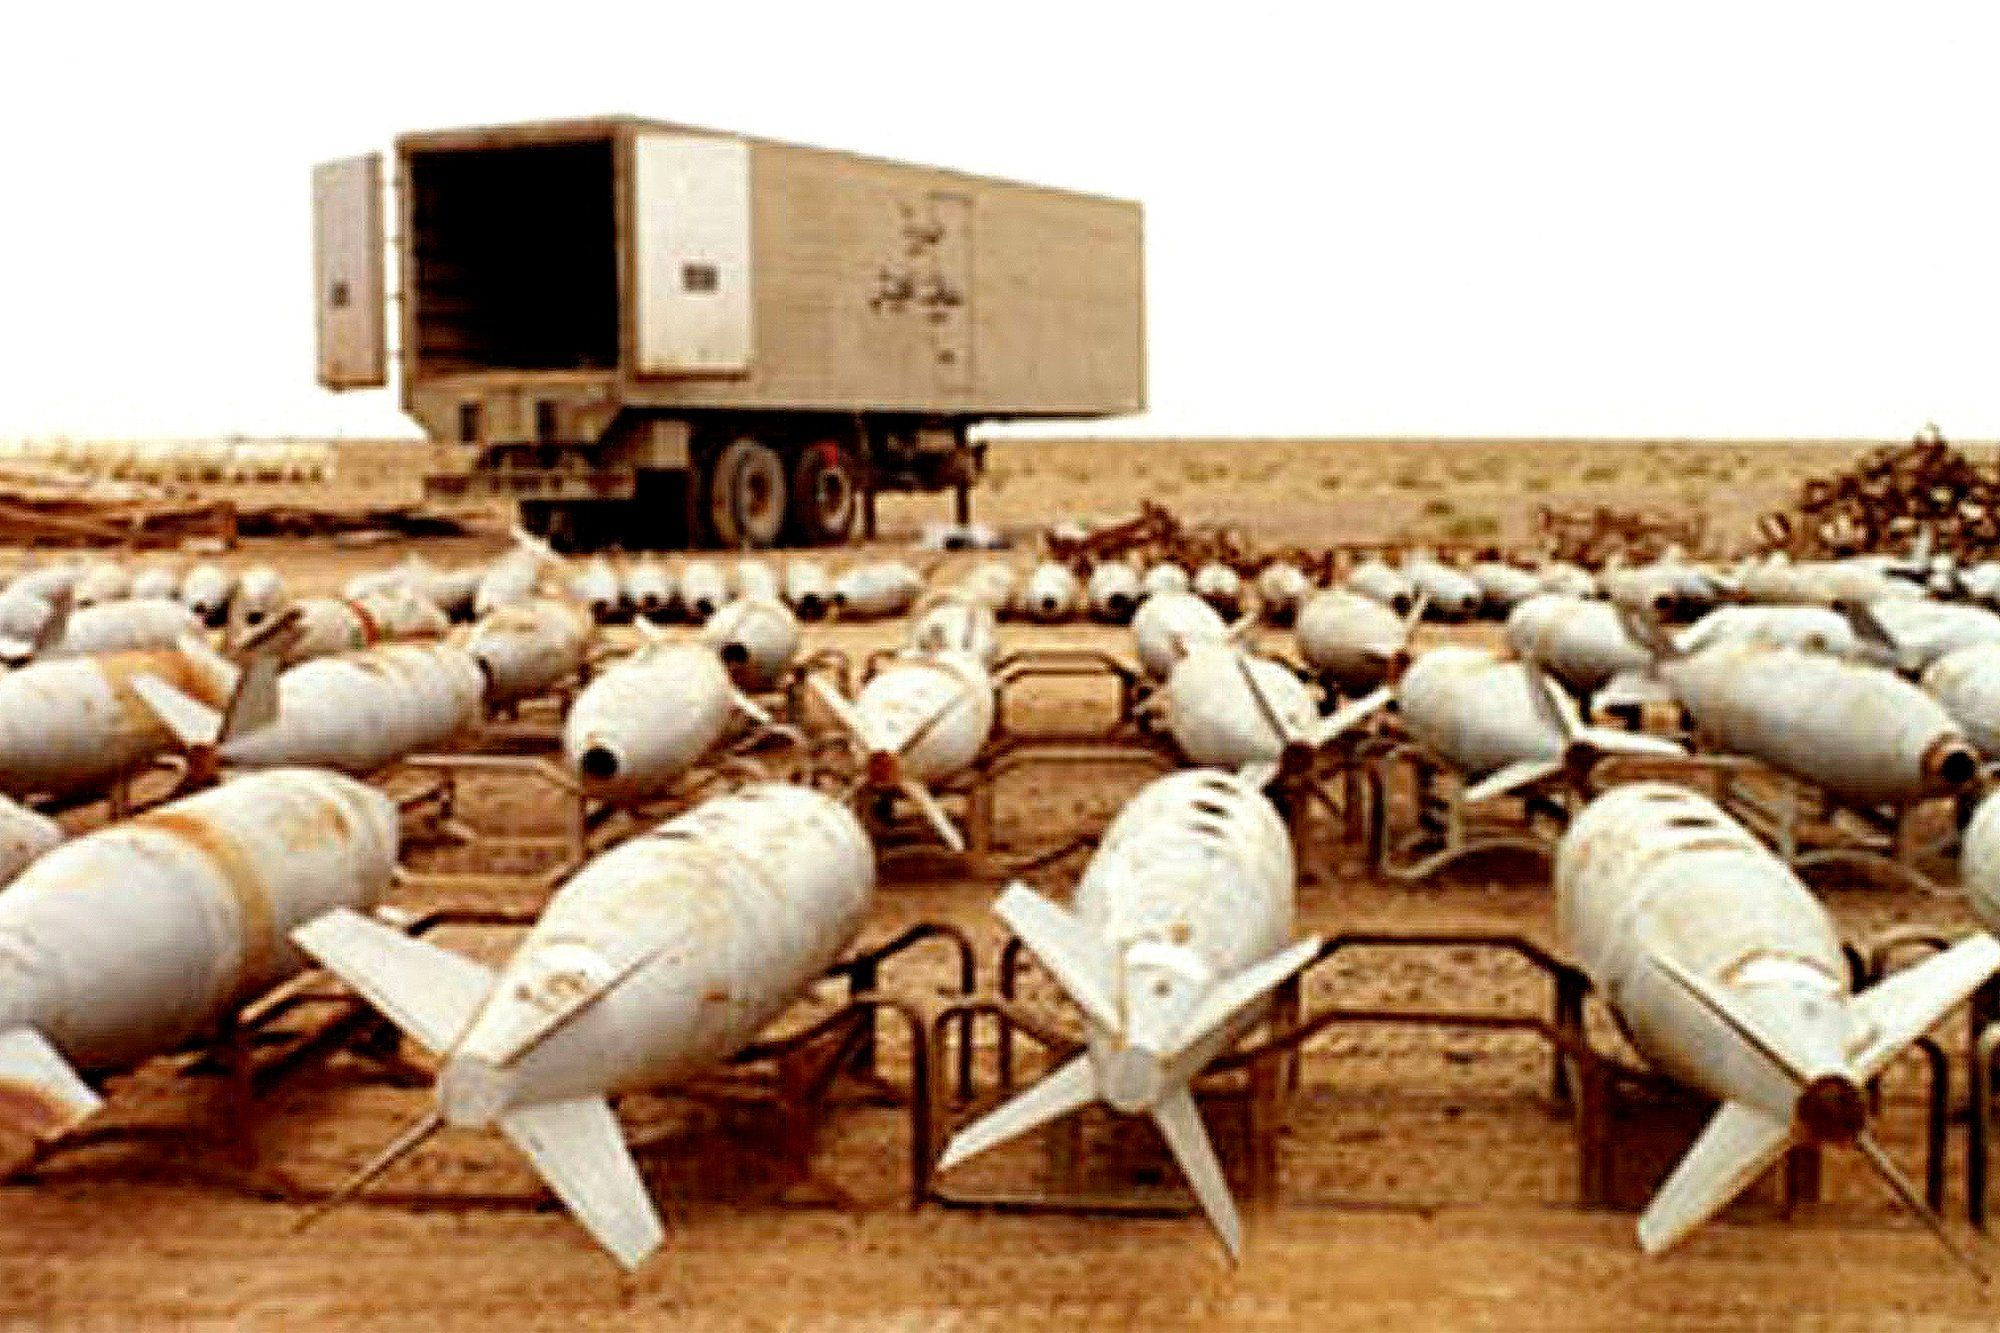 """Cannot have a """"civilized war"""" (oxymoron for sure) if the bad guys break the rules.  Before he was killed, Saddam-era WMD specialist Abu Malik was assembling a stockpile of specialized gear. Now U.S. spies want to know: for what?"""